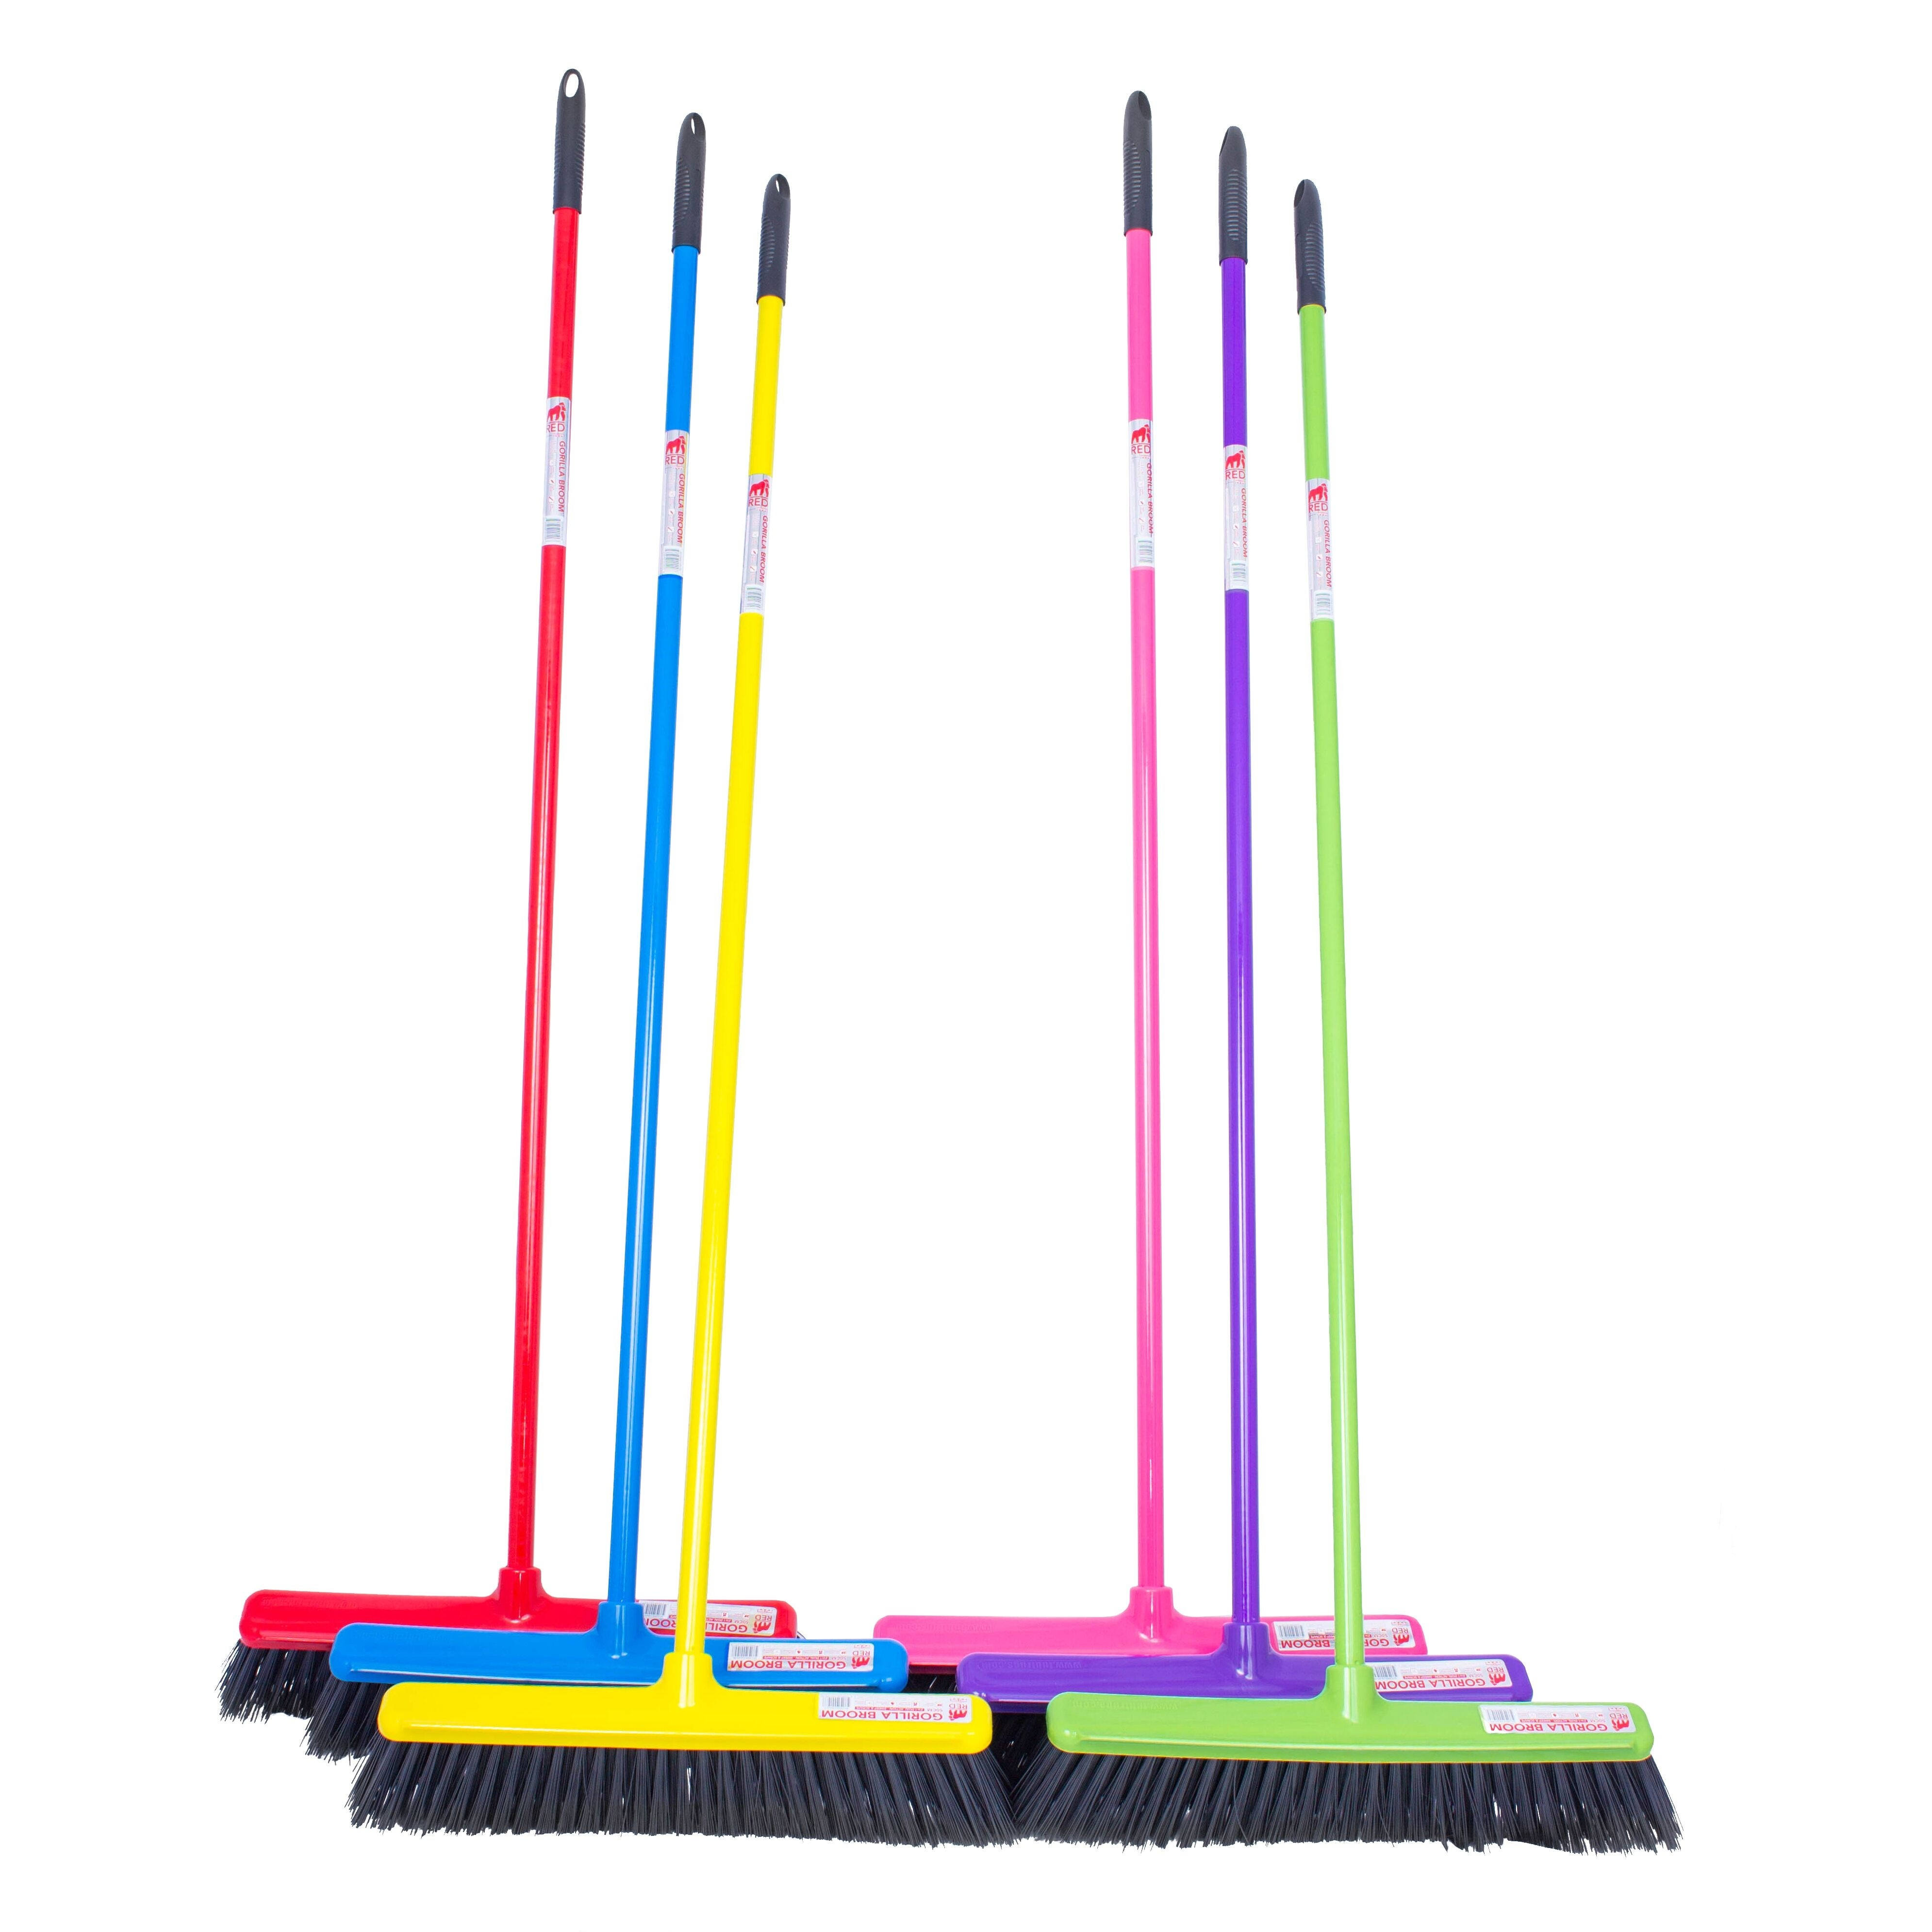 Red Gorilla 50cm Complete Broom  - Thomas Irving's equestrian and accessories store  Red Gorilla 50cm Complete Broom